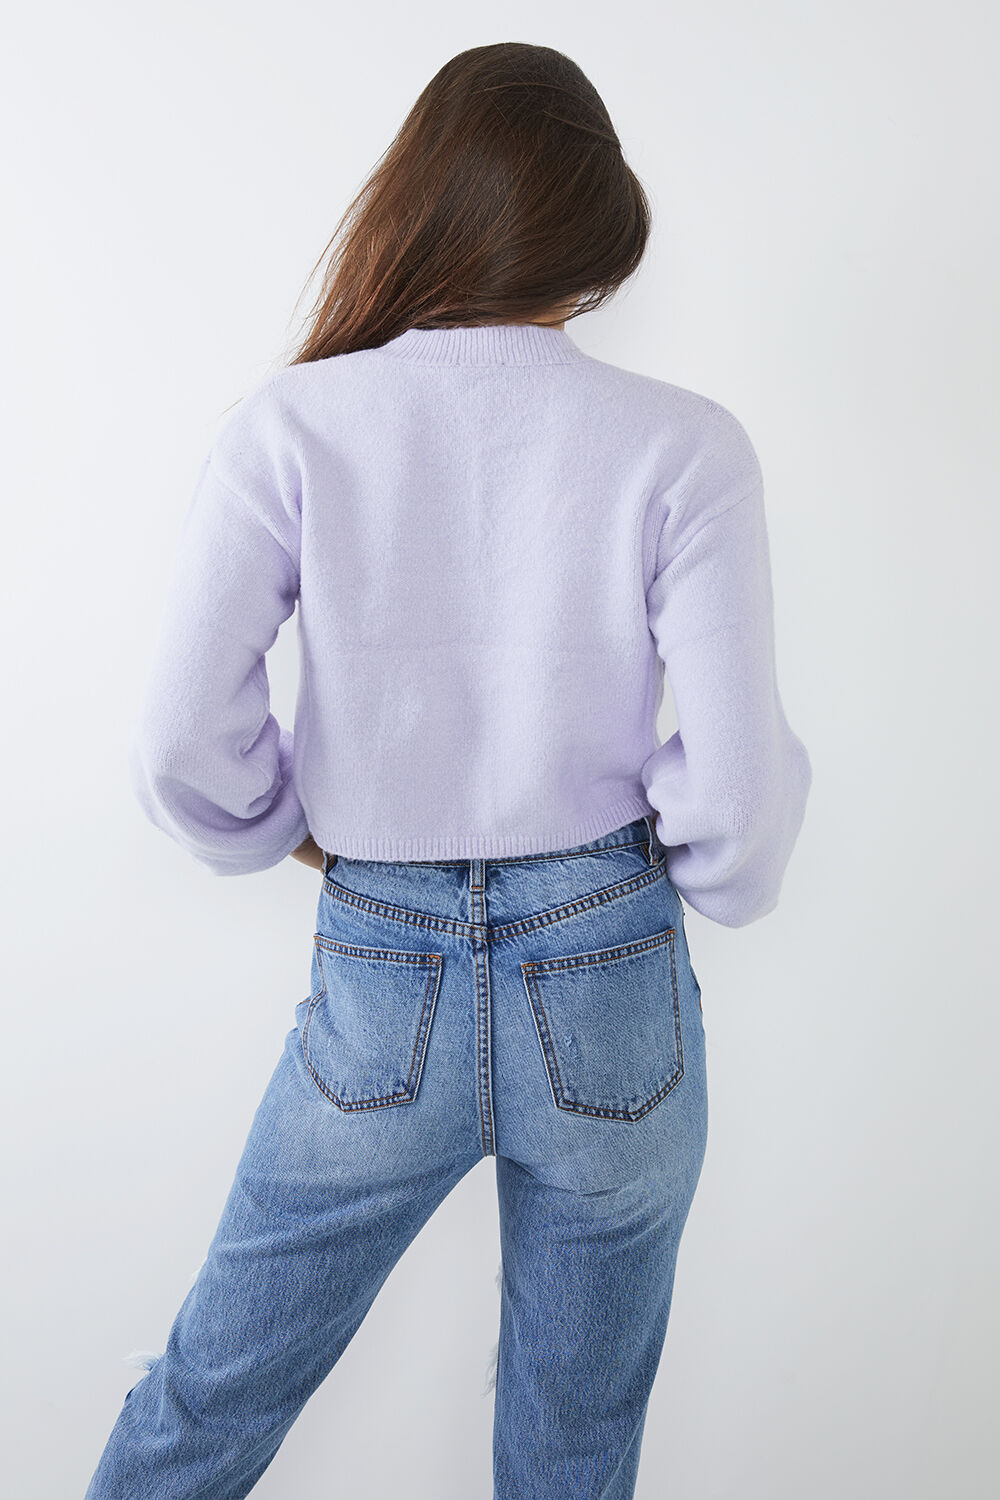 CHLOE COSY CROP KNIT in colour GRAY LILAC